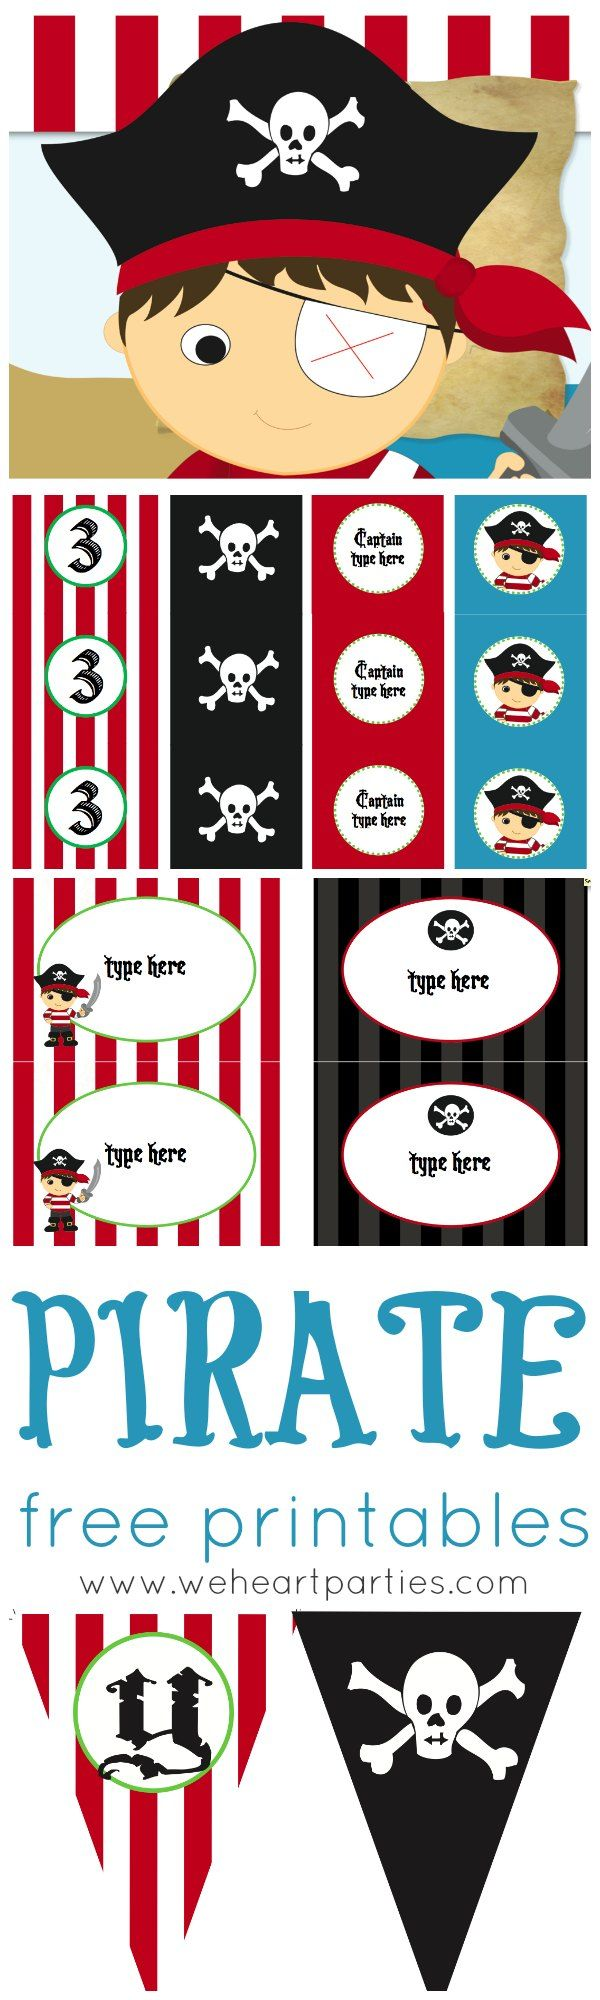 photograph about Pirate Party Printable identified as No cost Pirate Occasion Printables (editable with childs track record and